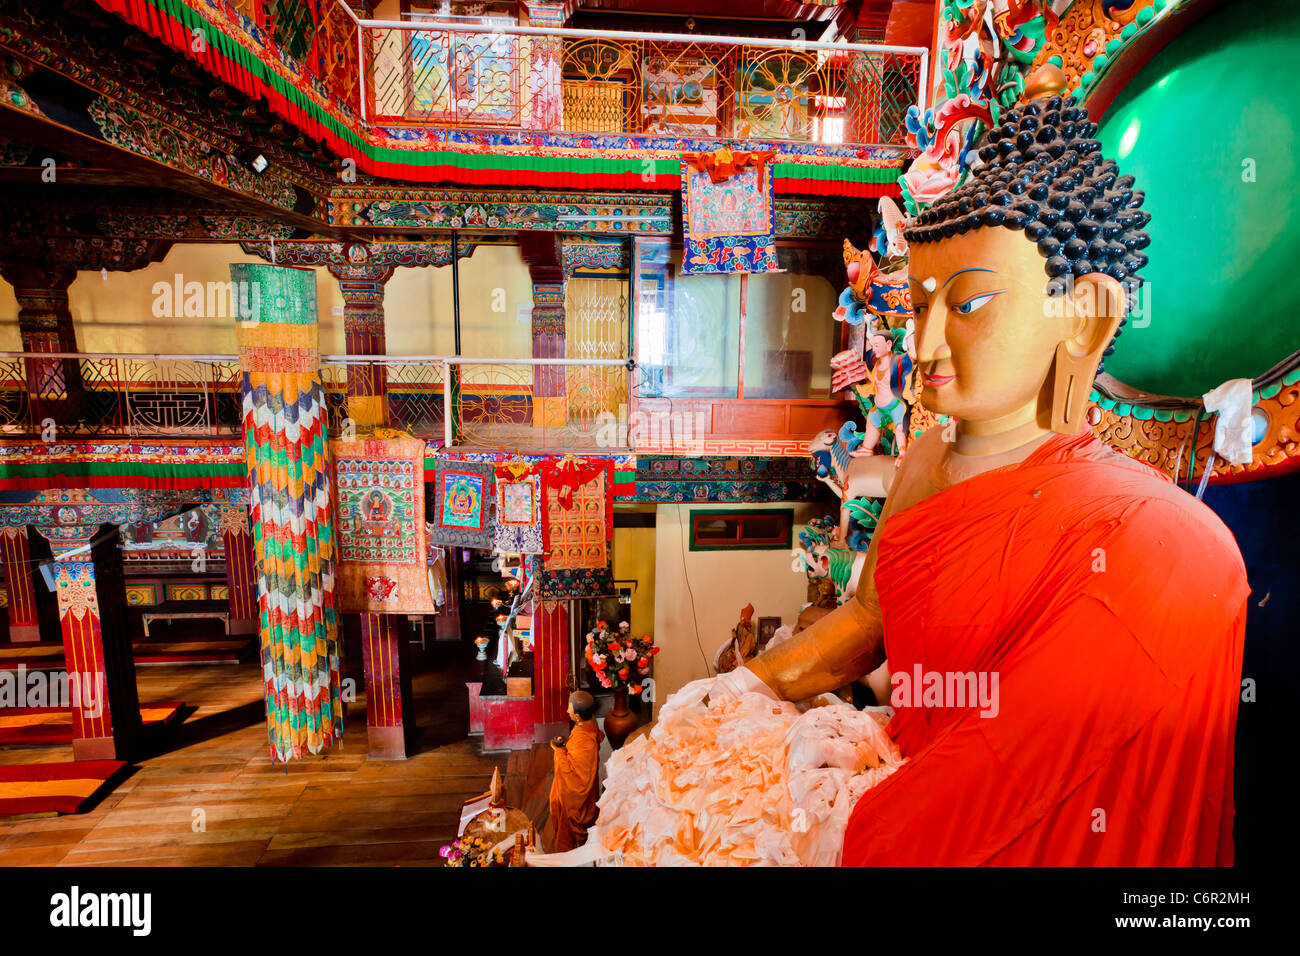 Multi colored embroidered hangings in the interior of Tawang Gompa Arunachal Pradesh, India - Stock Image